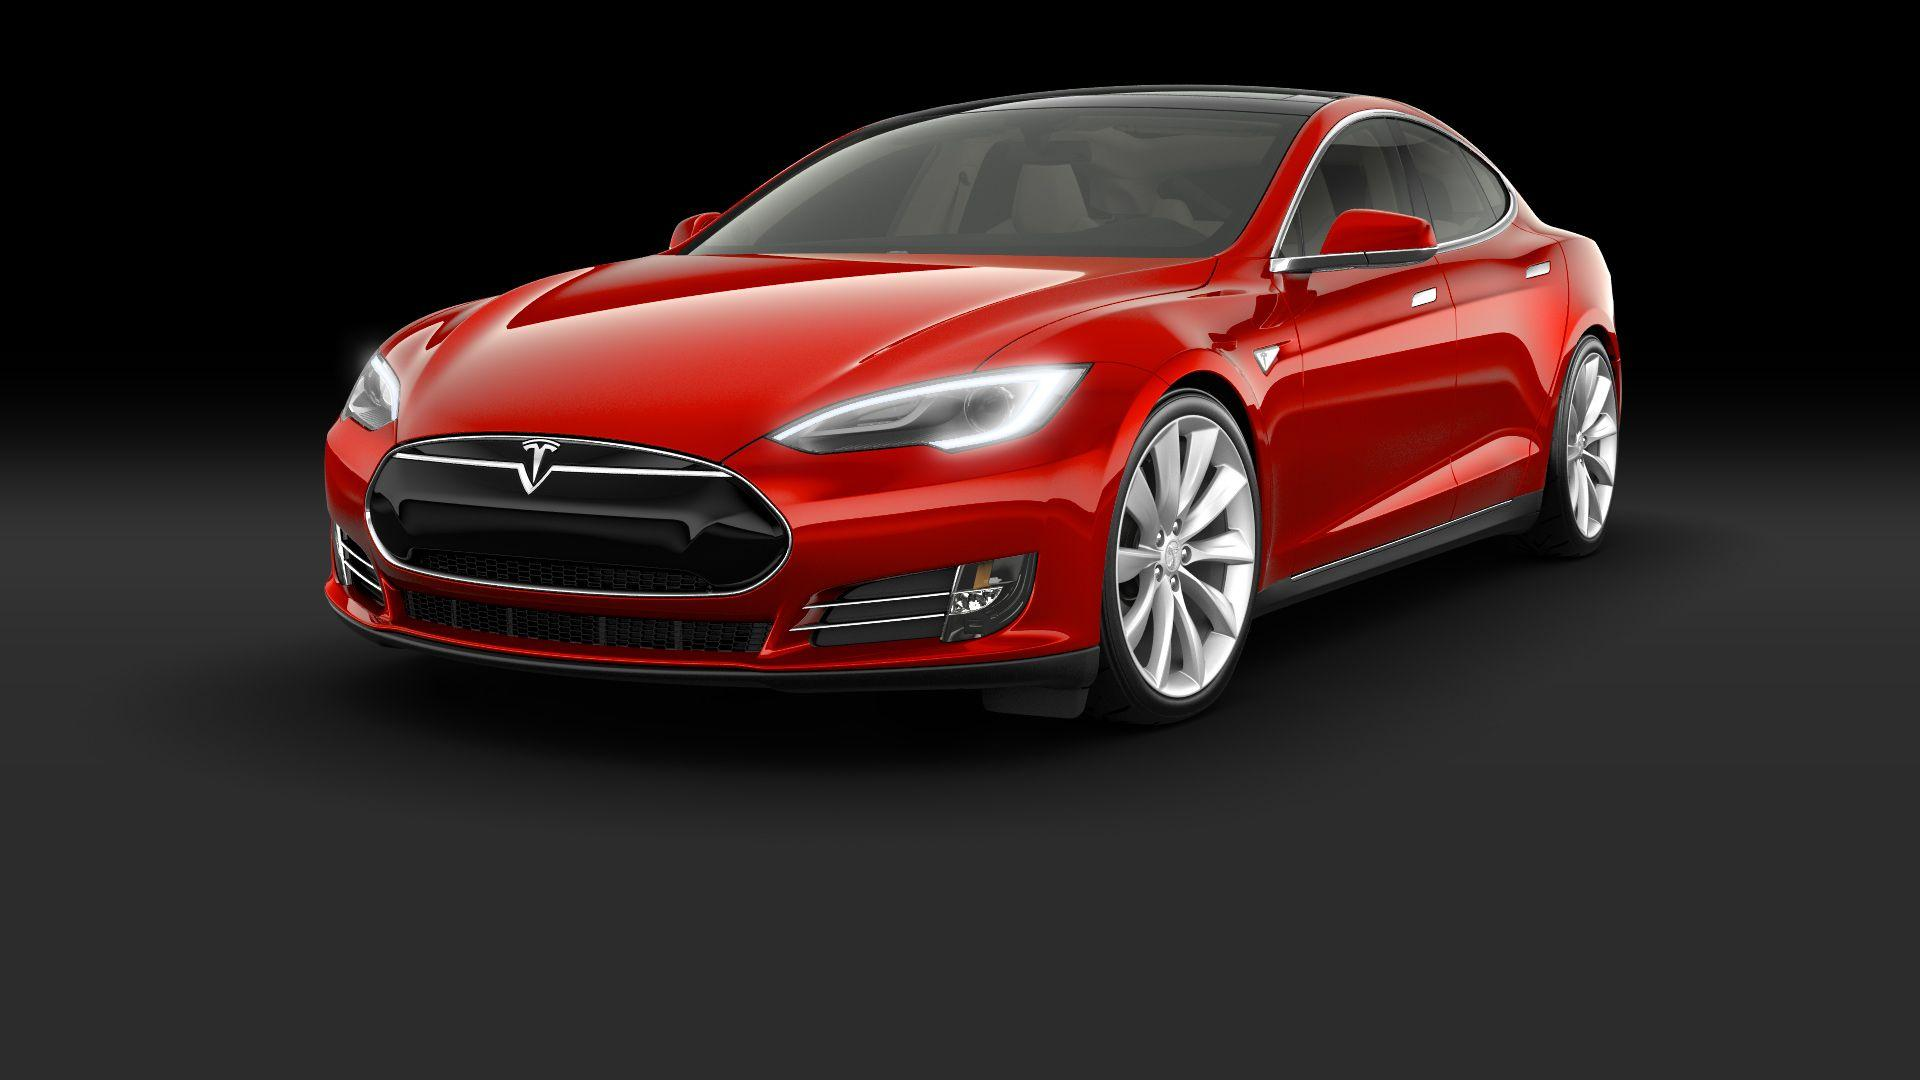 Here's a Chance to Win a 60 kW Tesla Model S and Help Others in the